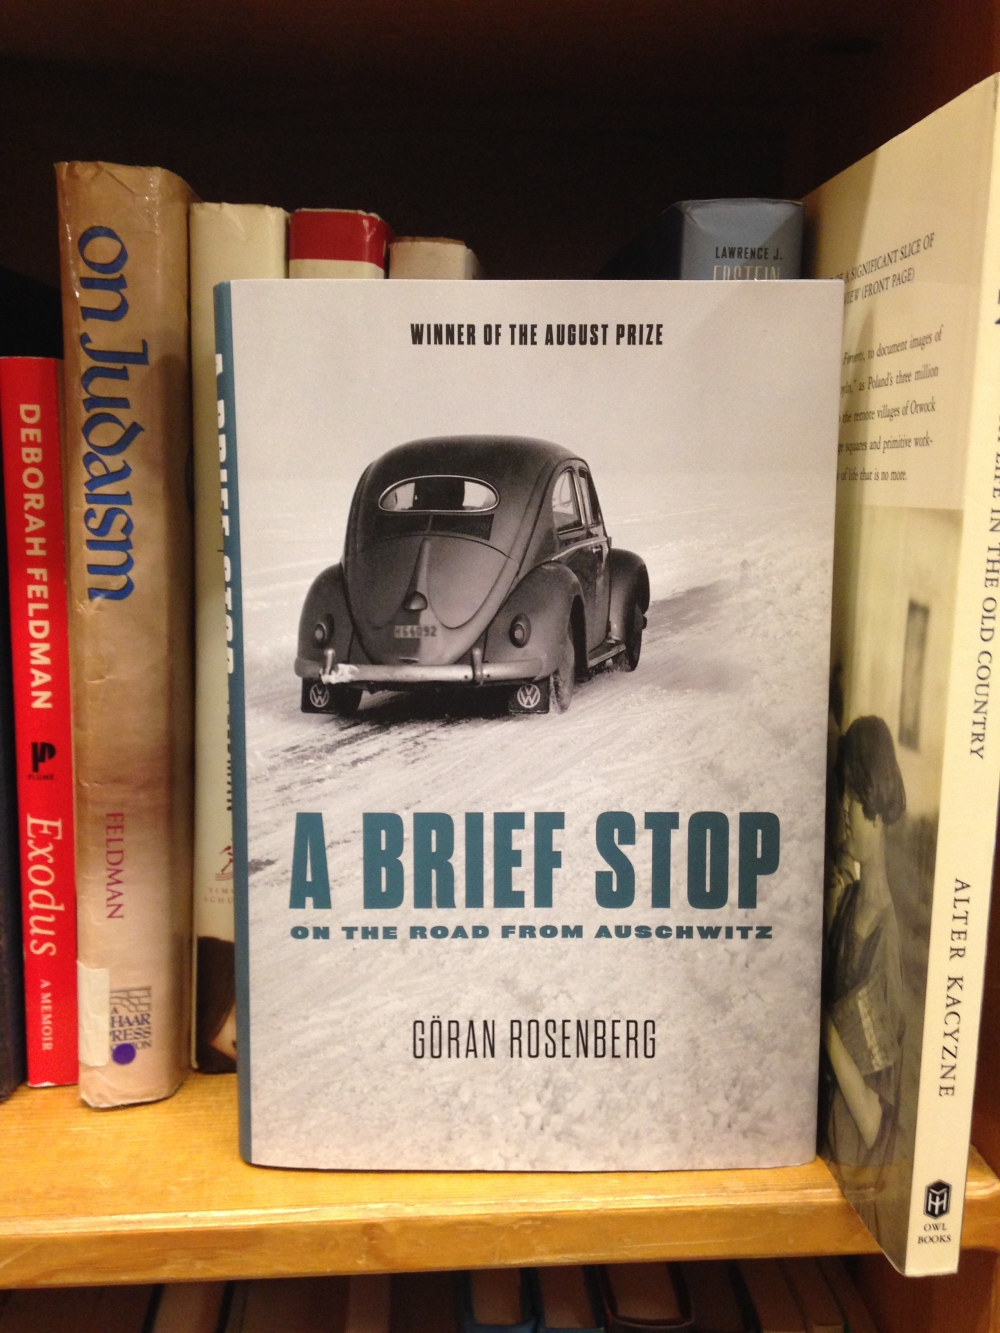 Goran Rosenberg's A Brief Stop on the Road from Auschwitz has found a broad audience in Sweden and around the world. Photograph by Hannah Pressman.